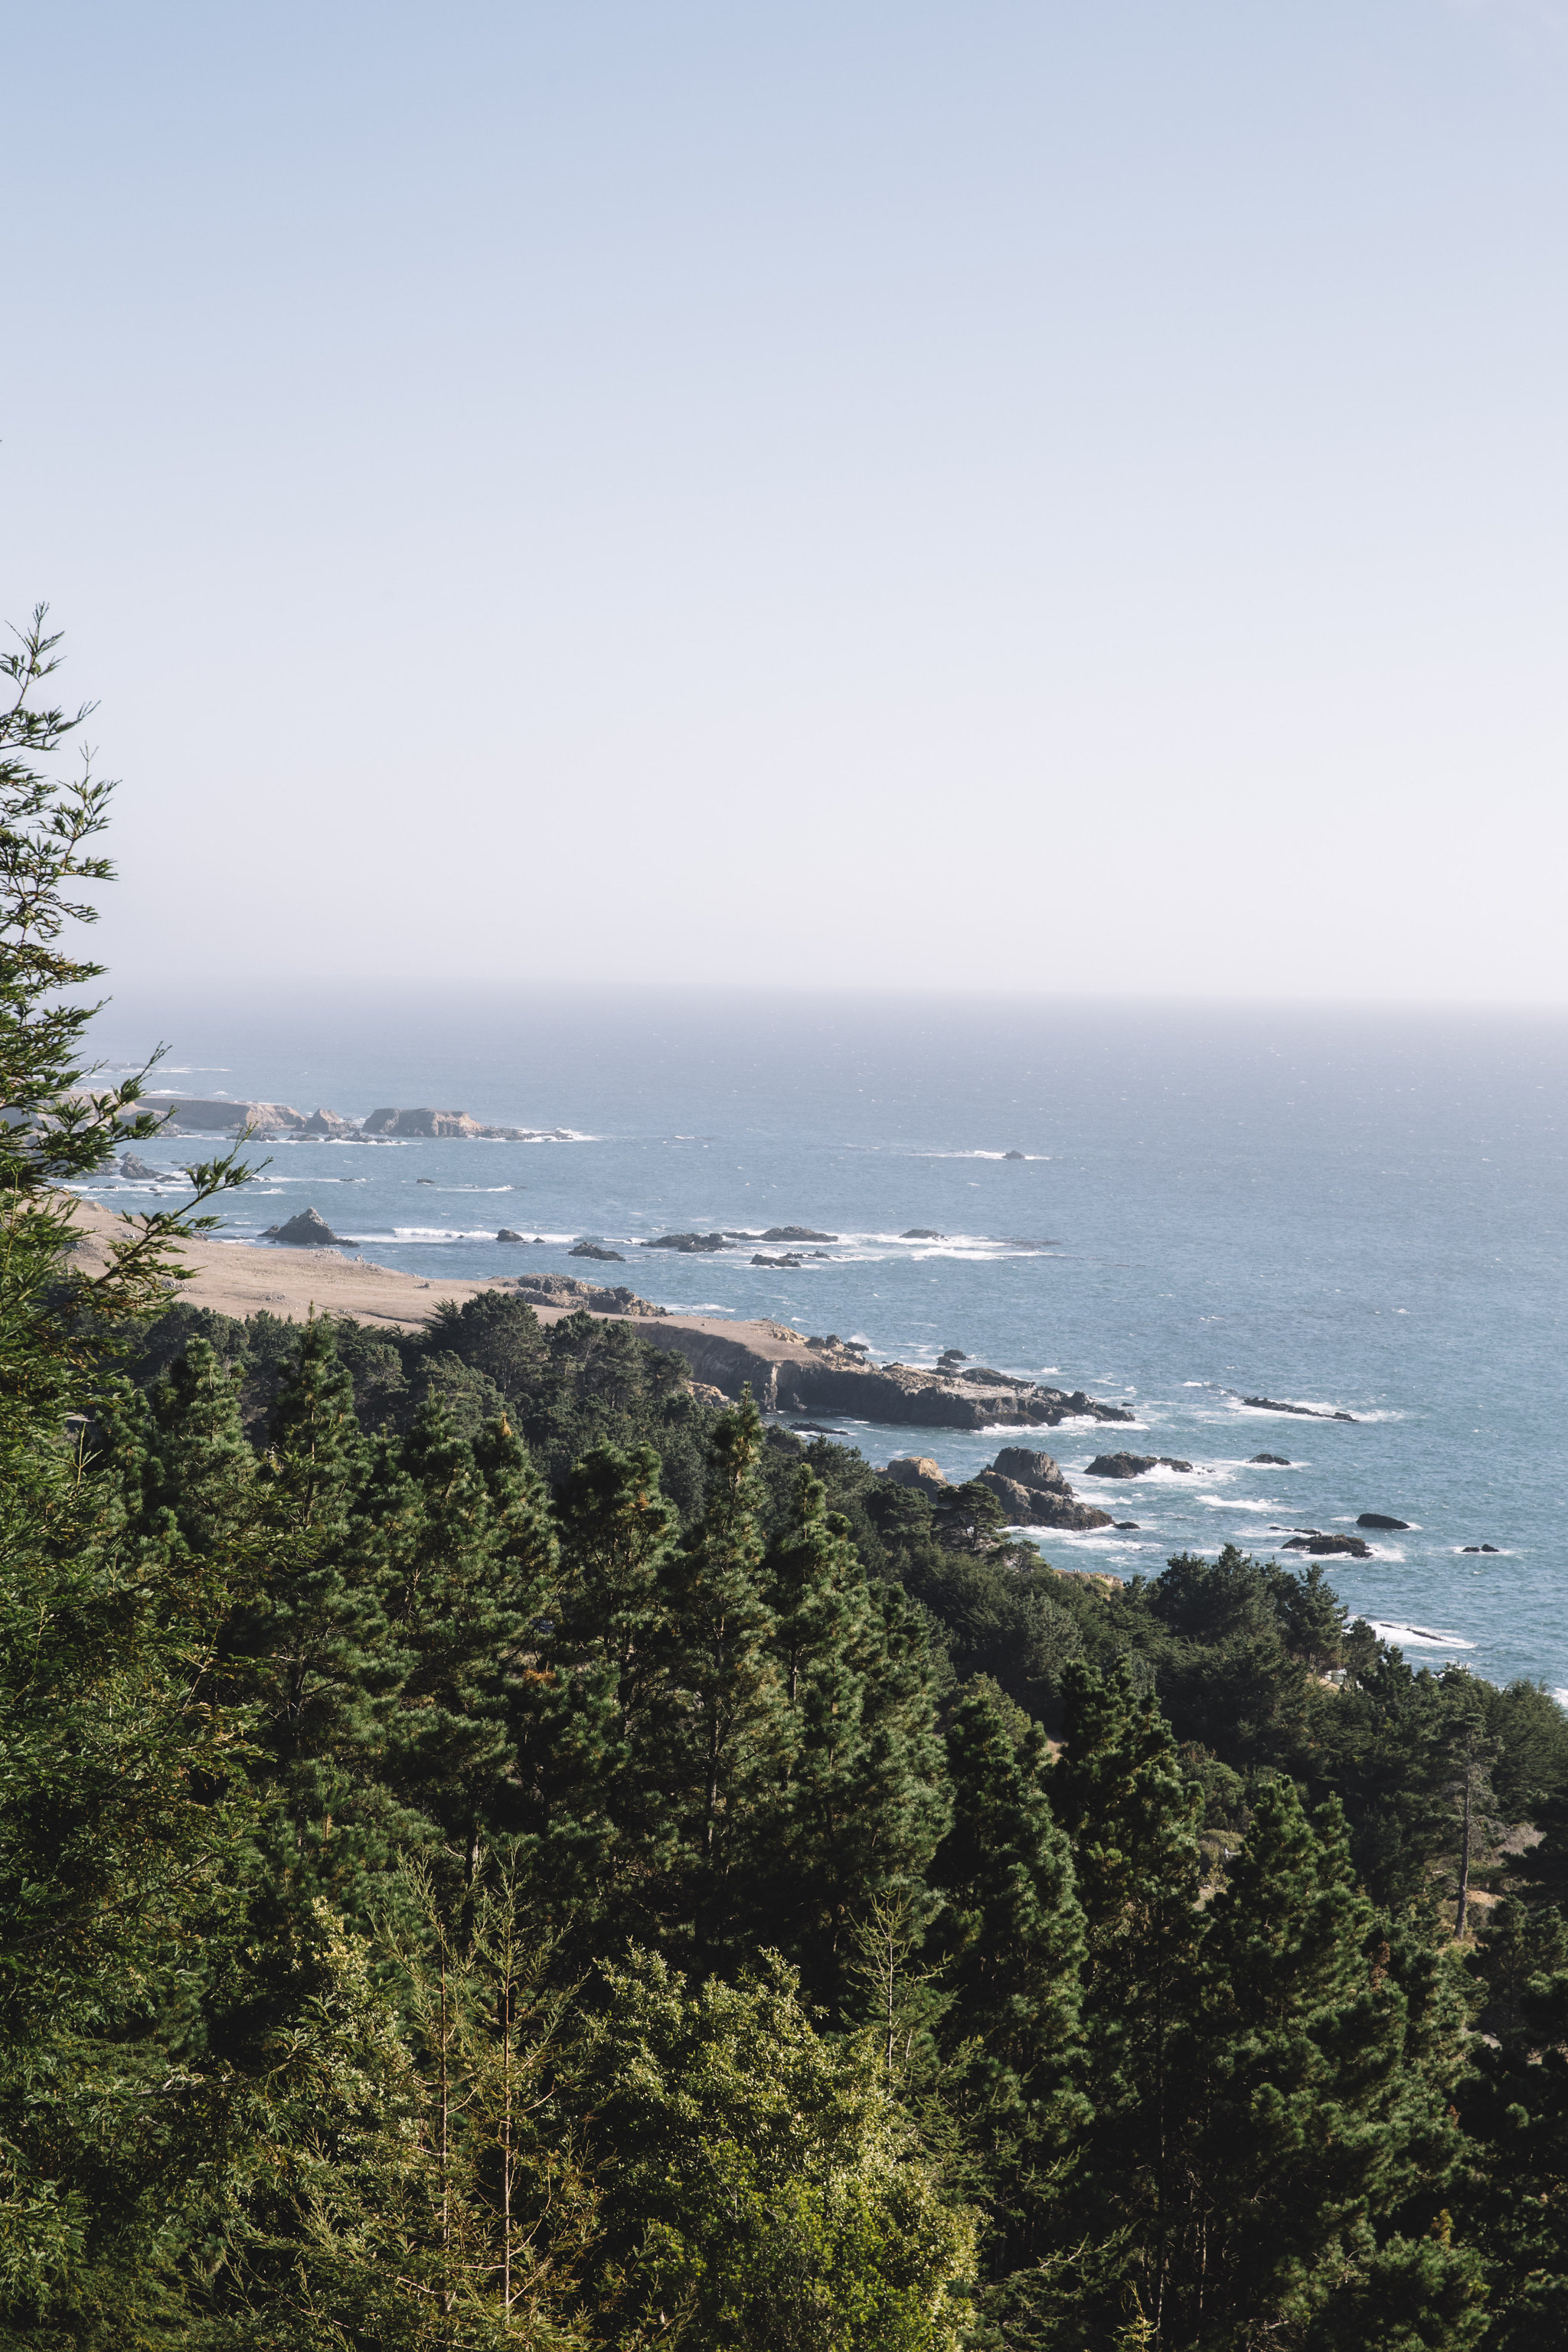 Sea Ranch Wedding with Venn Floral, Downey Street Events, Paula LeDuc, and Lucille Lawrence.